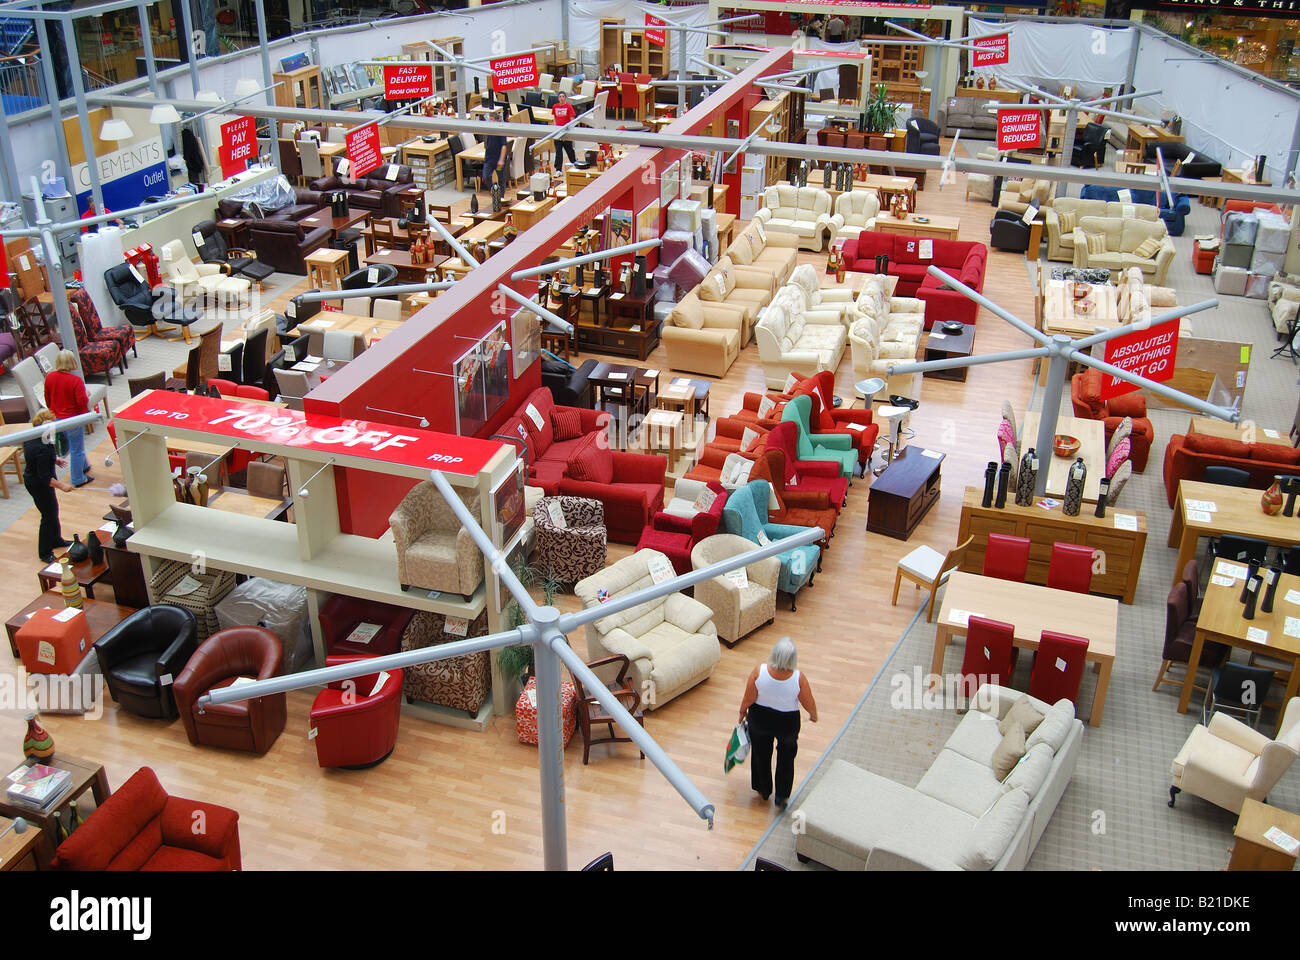 Furniture Display, The Galleria Outlet Shopping Centre, Town Centre,  Hatfield, Hertfordshire, England, United Kingdom